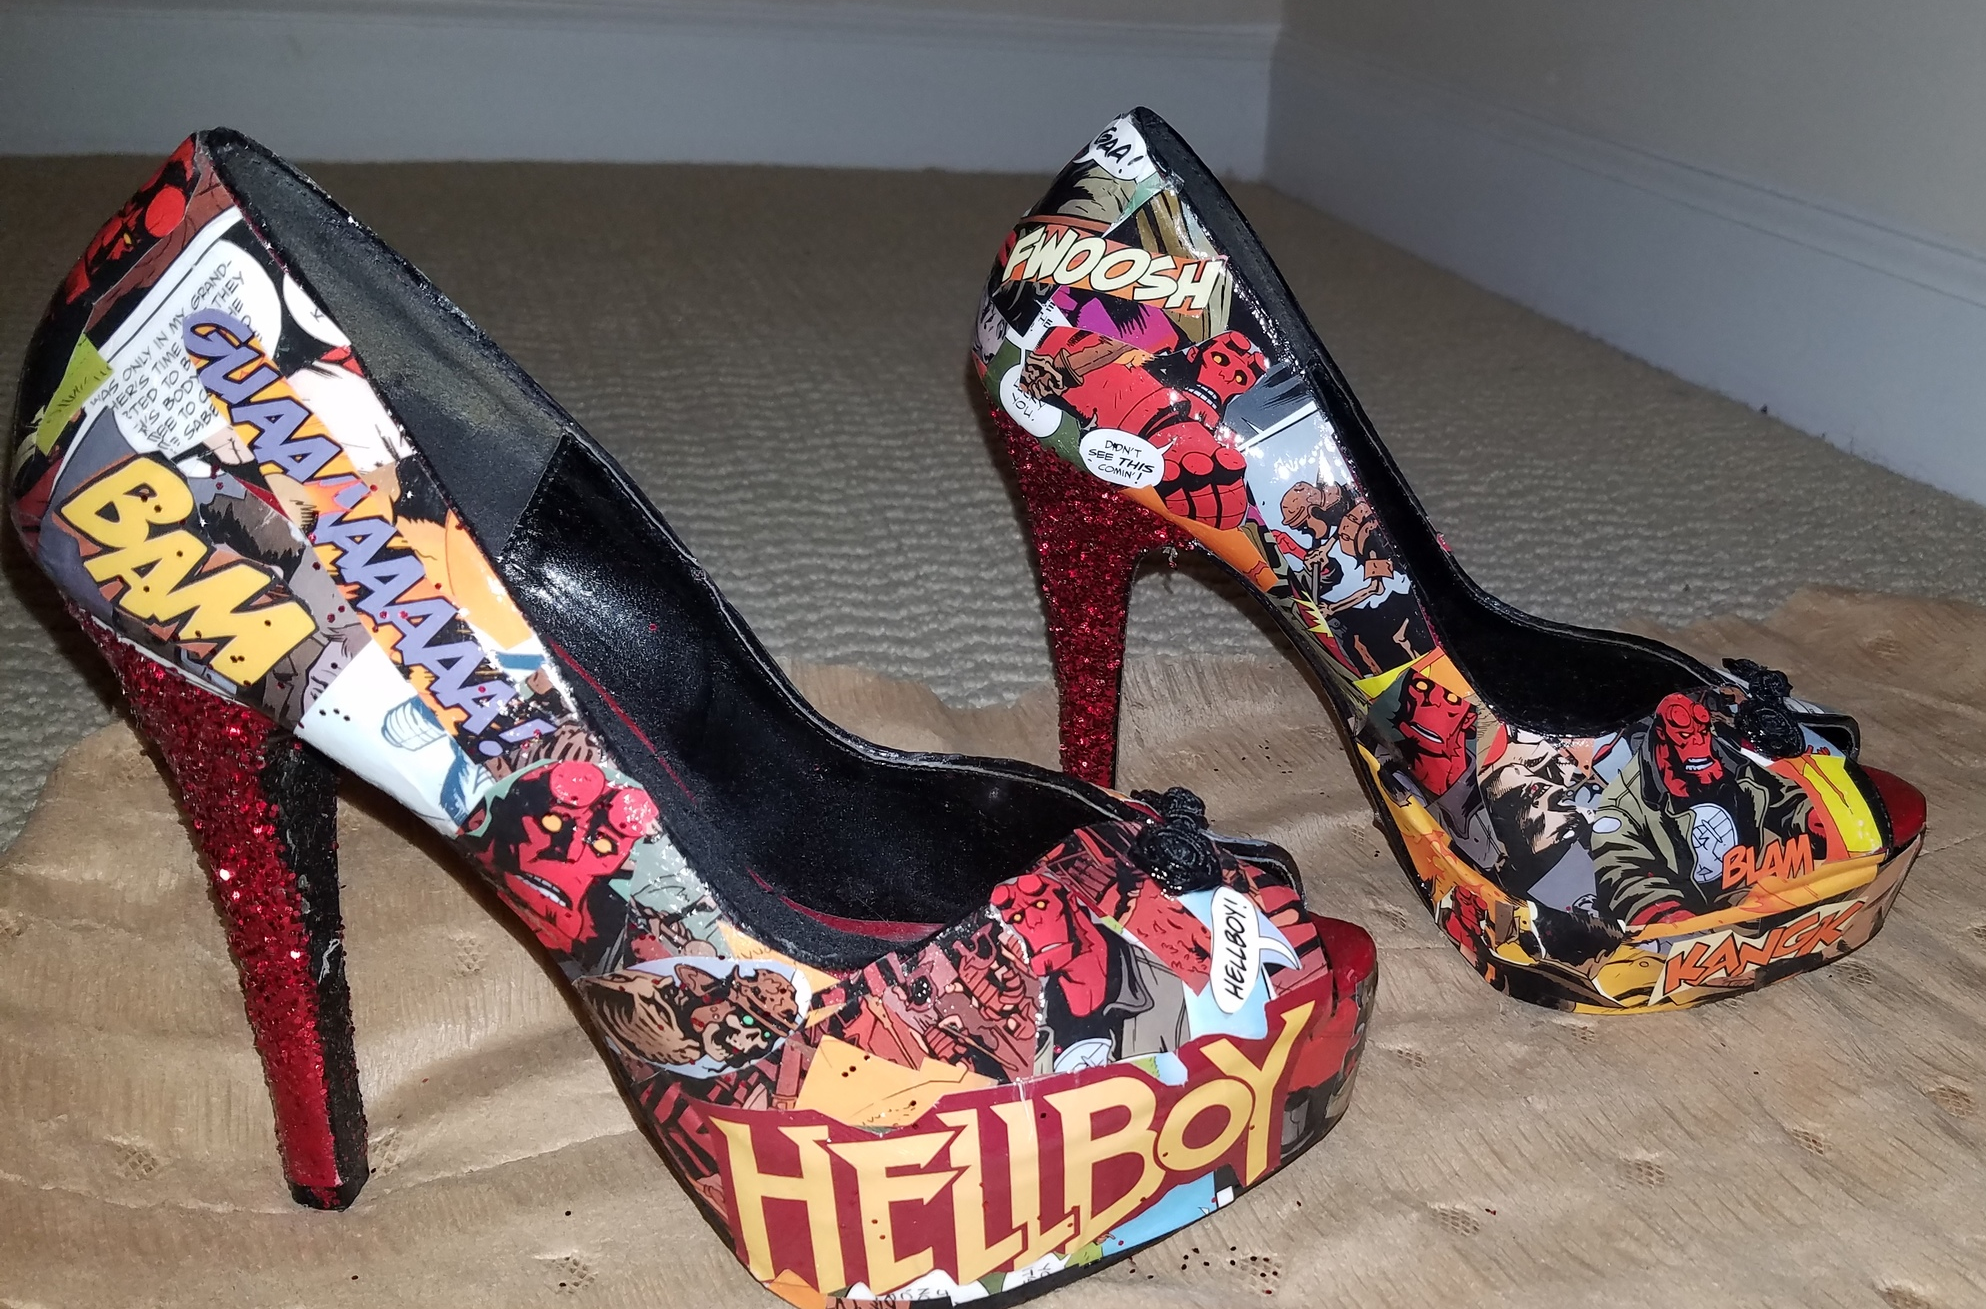 Decoupage by Chantel  sent me these gorgeous shoes. I LOVE me some Hellboy!